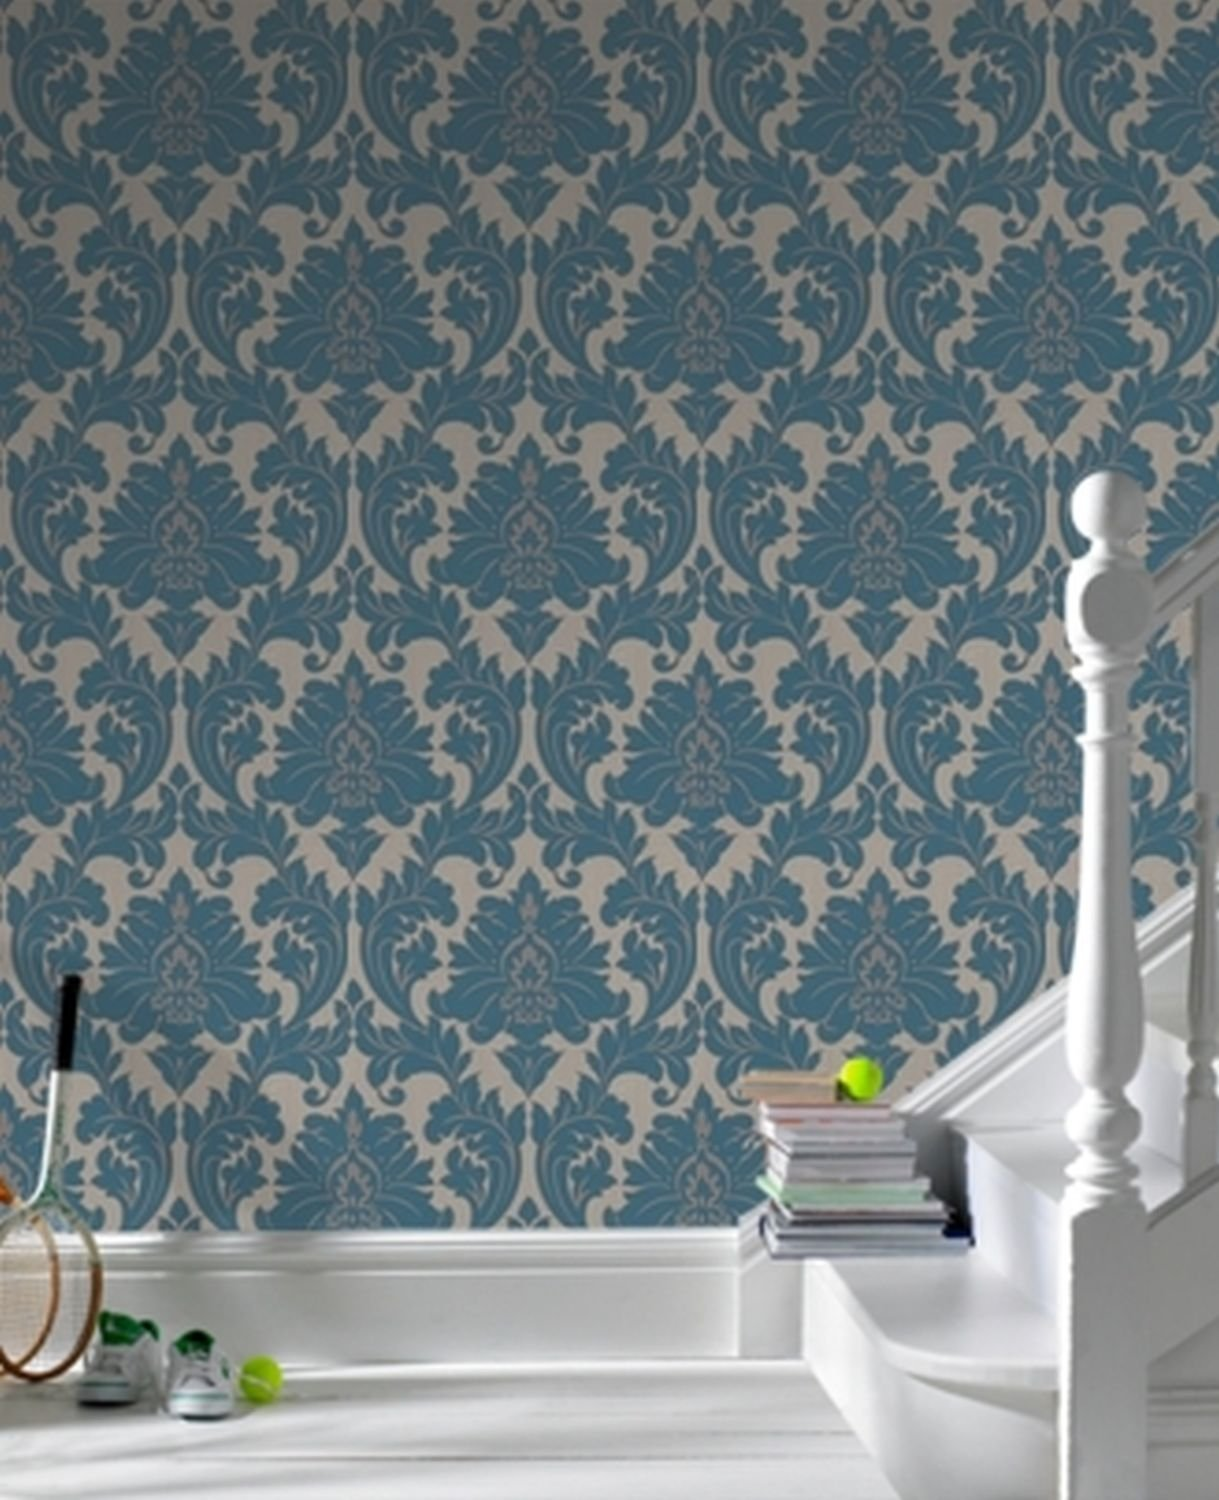 graham brown 30 435 superfresco easy majestic wallpaper teal amazoncom - Contemporary Damask Wallpaper